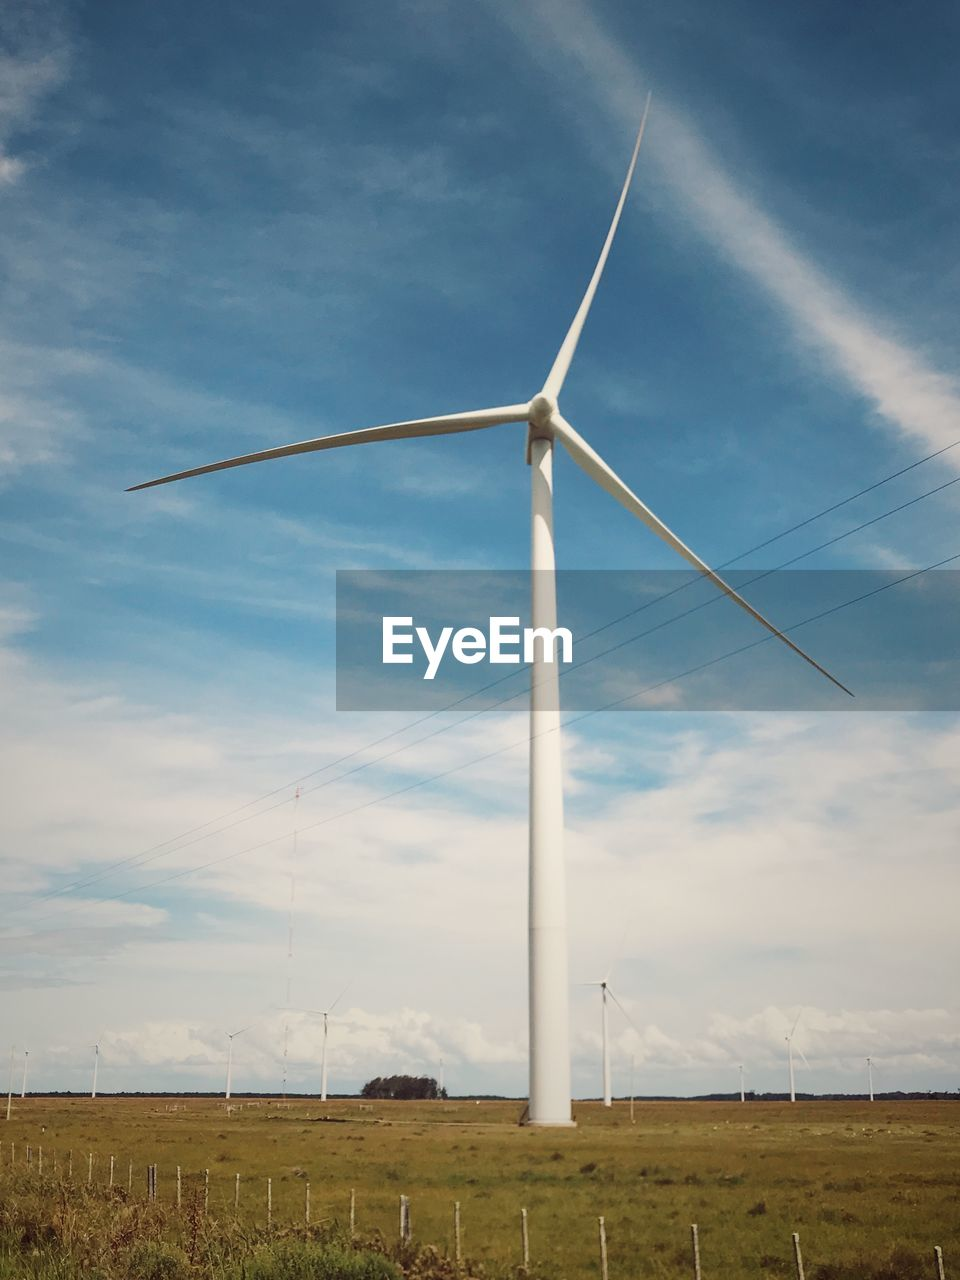 wind turbine, environmental conservation, fuel and power generation, renewable energy, turbine, environment, sky, alternative energy, wind power, landscape, cloud - sky, field, land, nature, rural scene, no people, day, technology, beauty in nature, low angle view, outdoors, sustainable resources, power supply